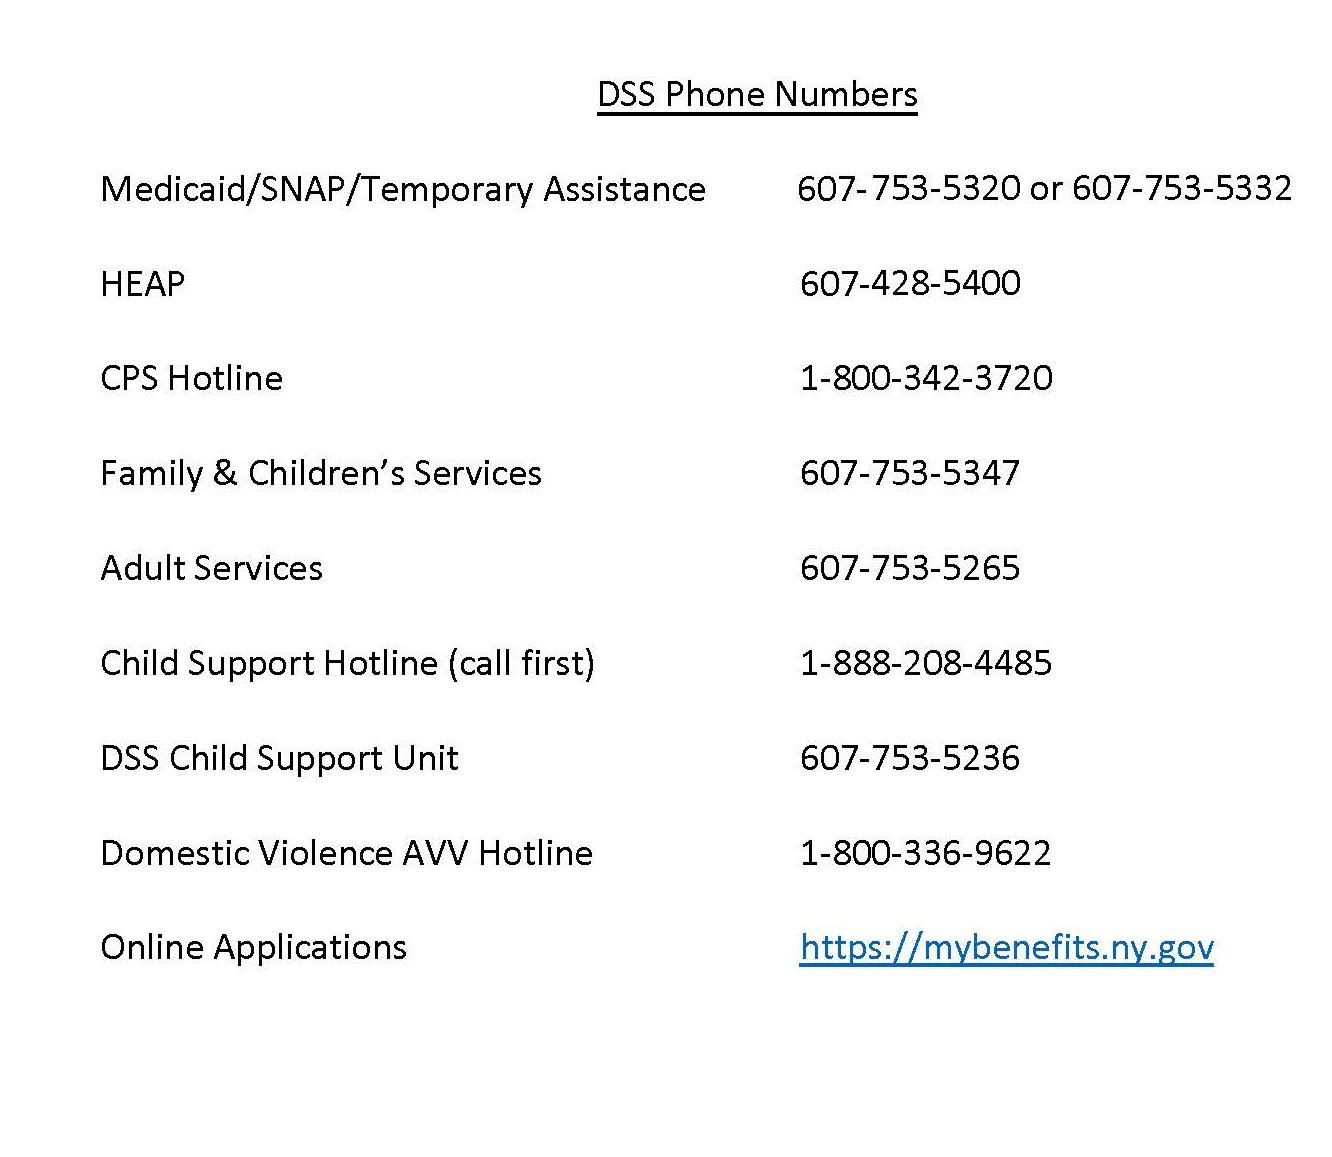 DSS phone numbers